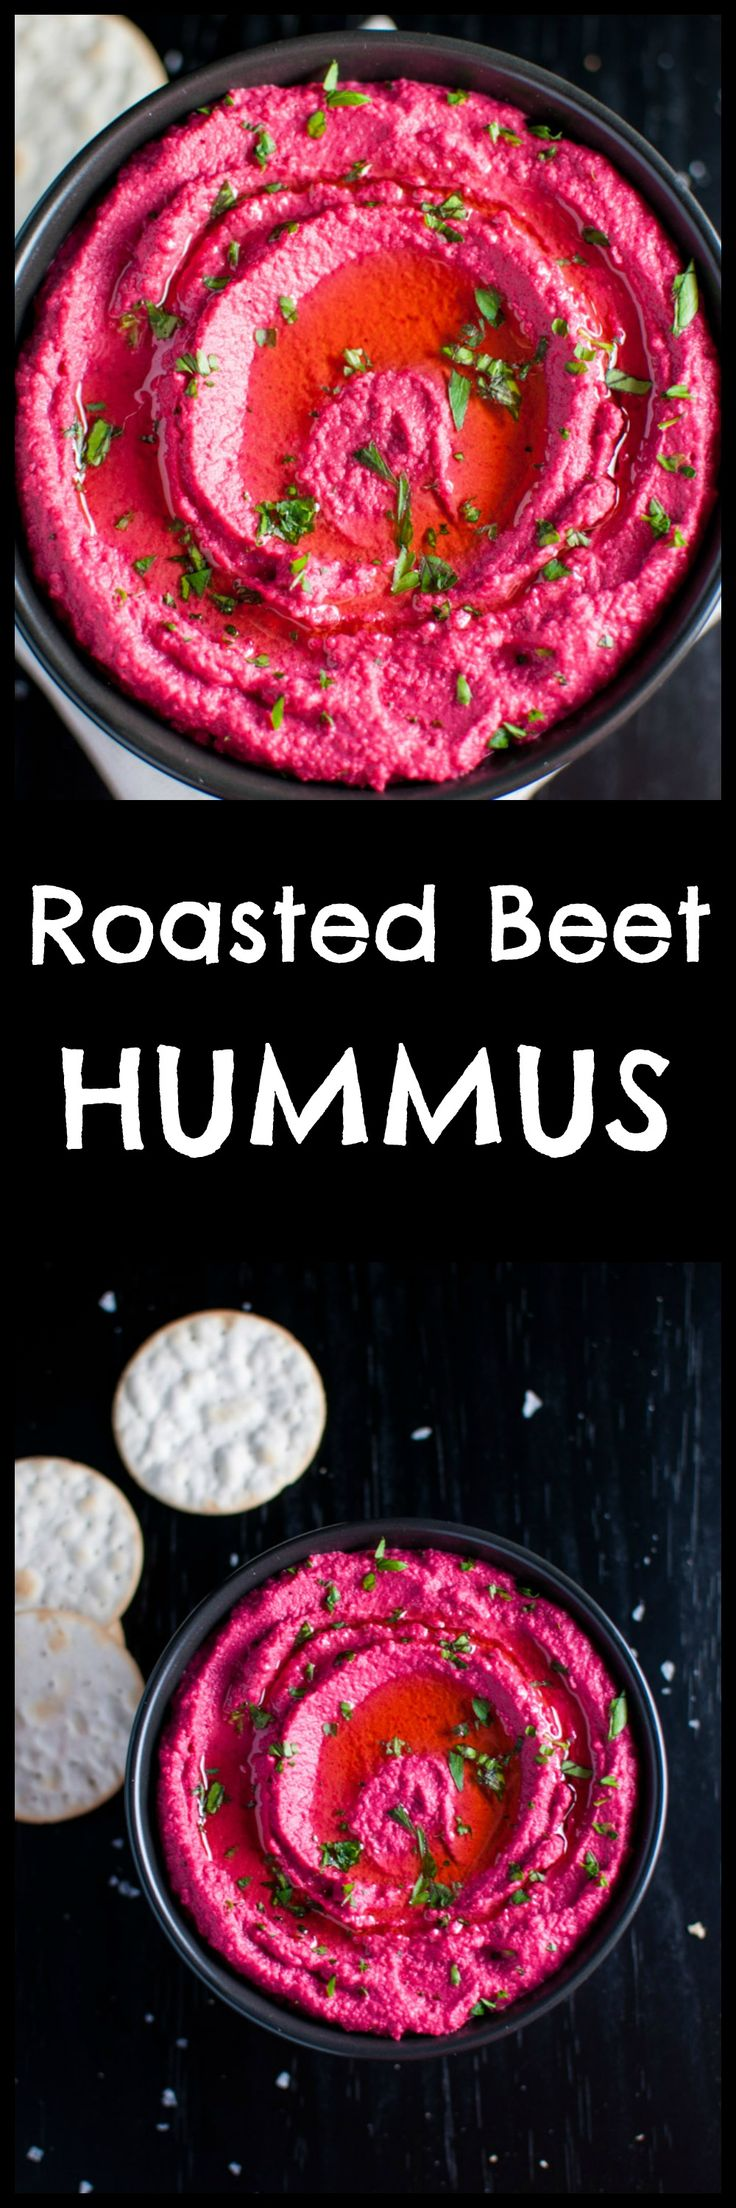 Add some color to your life with this roasted beet hummus – a bright pink dip that's a real crowd pleaser. Pin for later :)